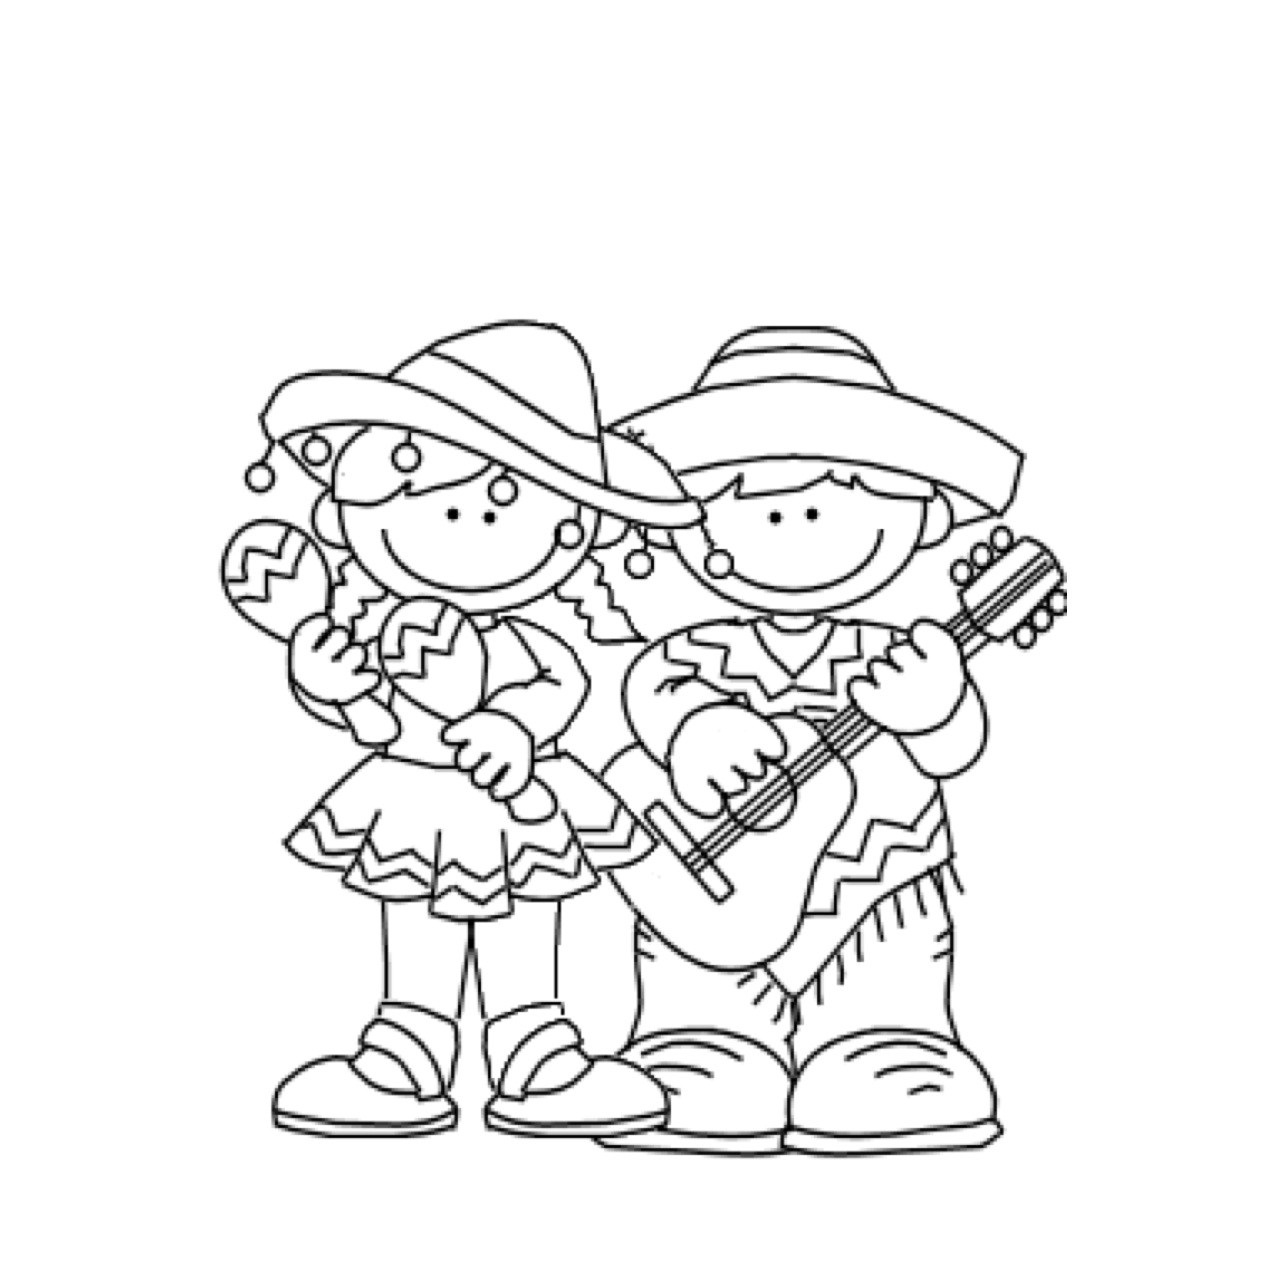 cinco de mayo free coloring pages | Free Printable Cinco De Mayo Coloring Pages For Kids ...